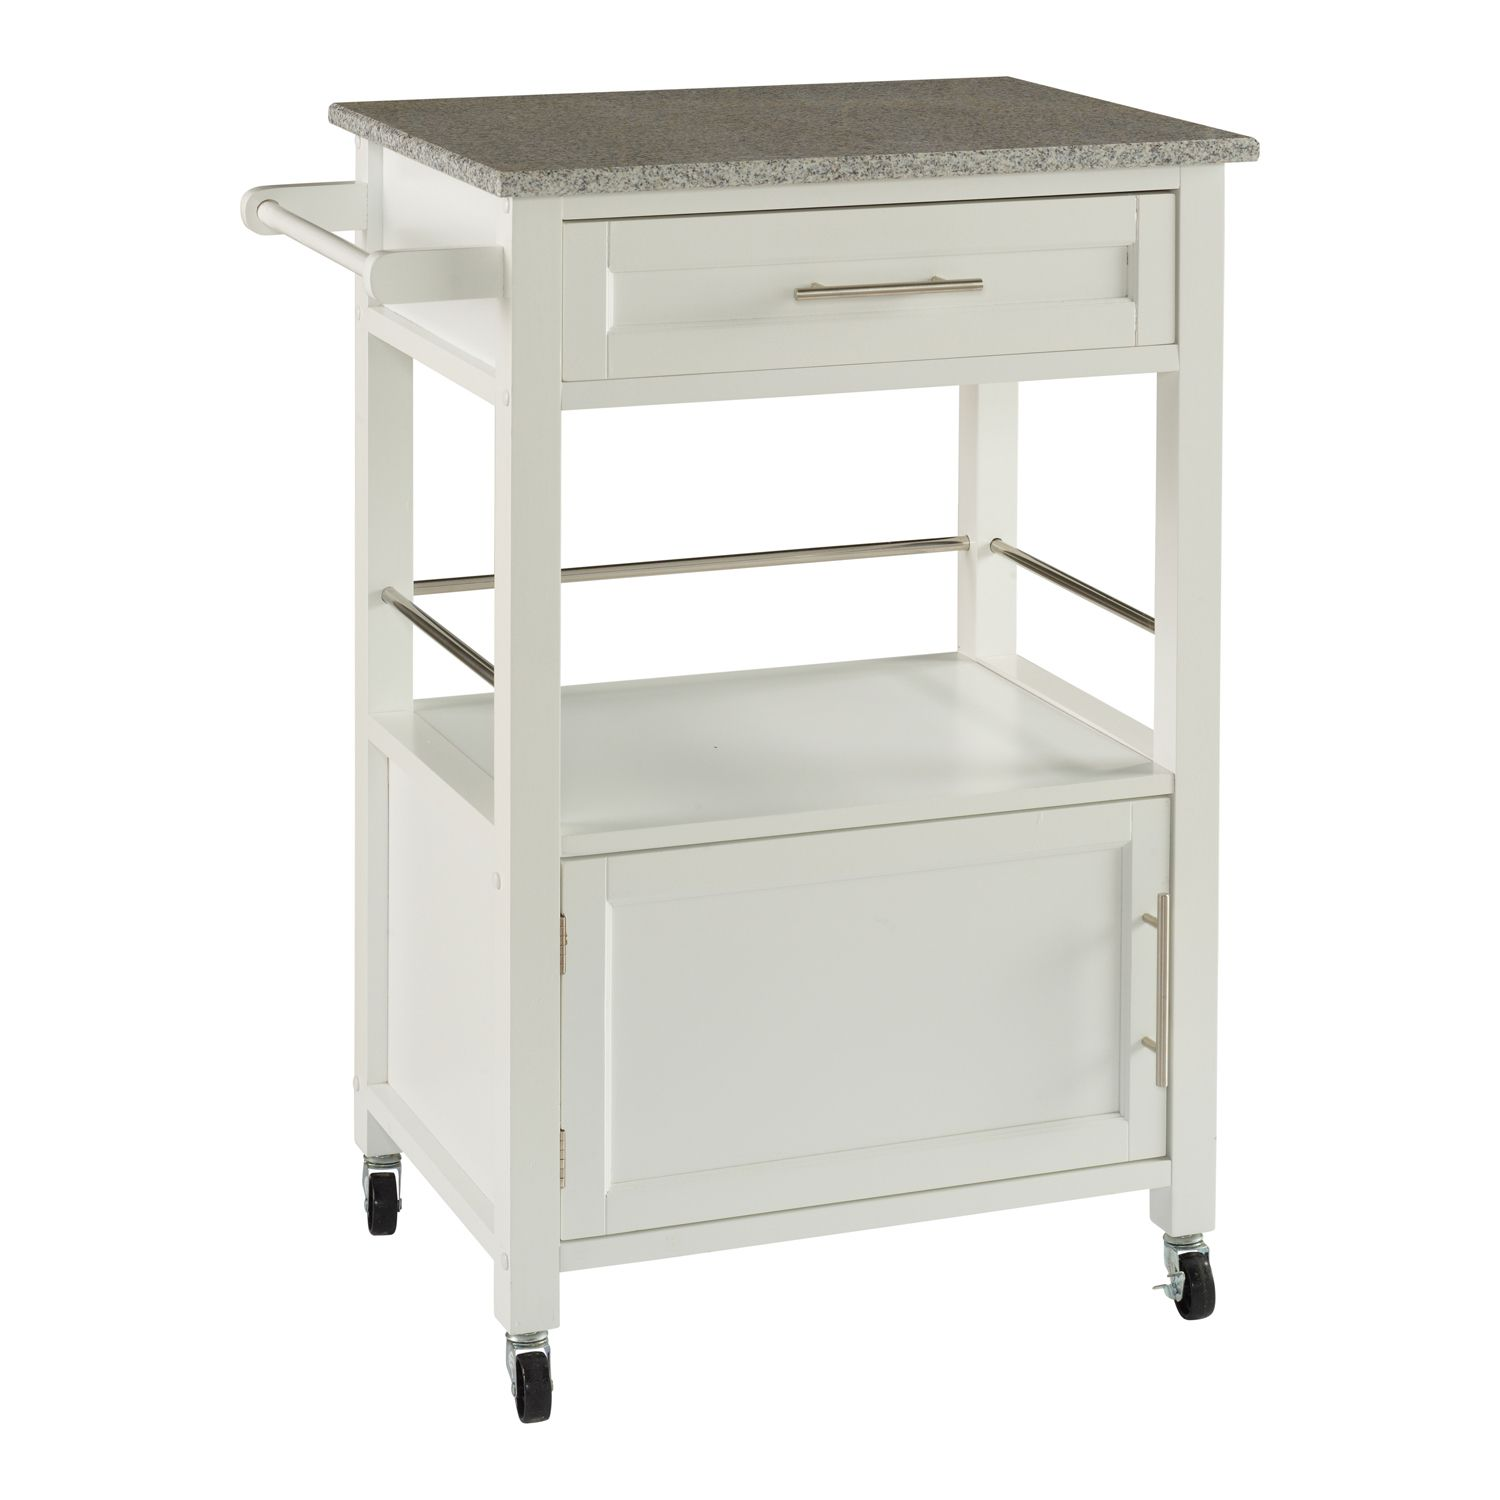 Regular. $249.99. Linon Mitchel Granite Top ...